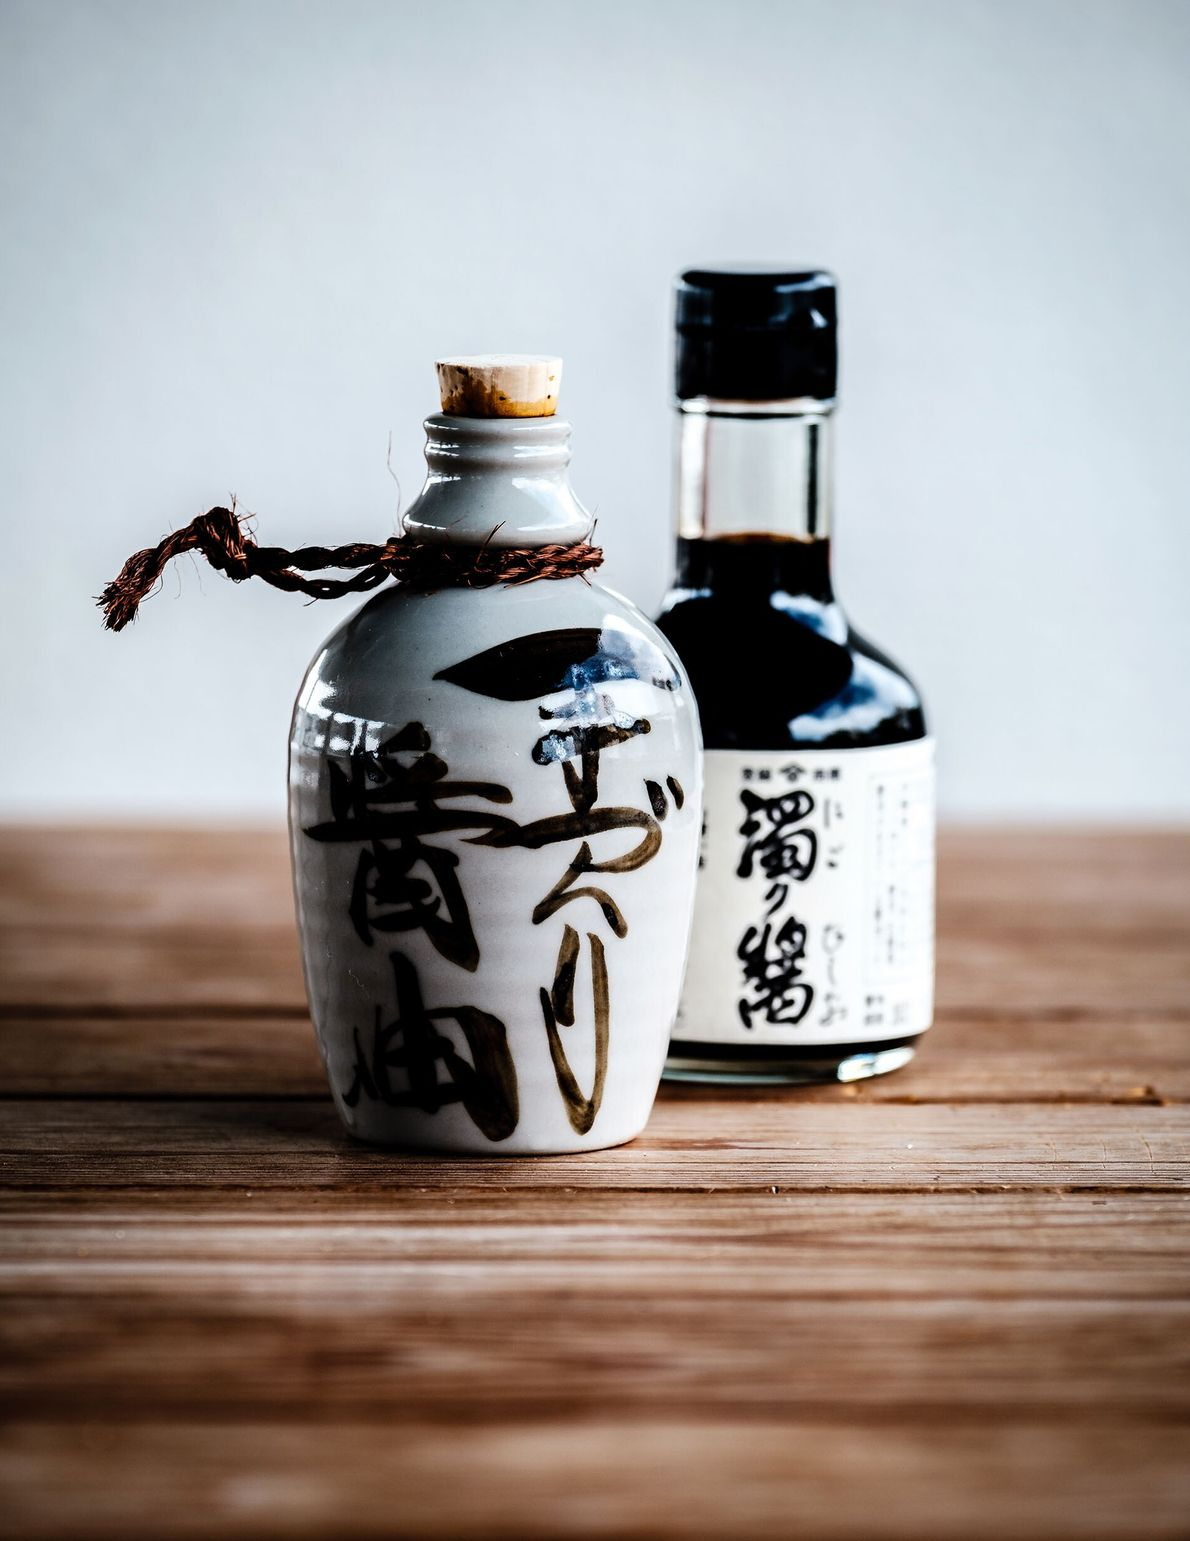 Japanese shōyu was first discovered as a byproduct of kinzanji-miso and quickly became an essential flavouring in Japanese cuisine. ...